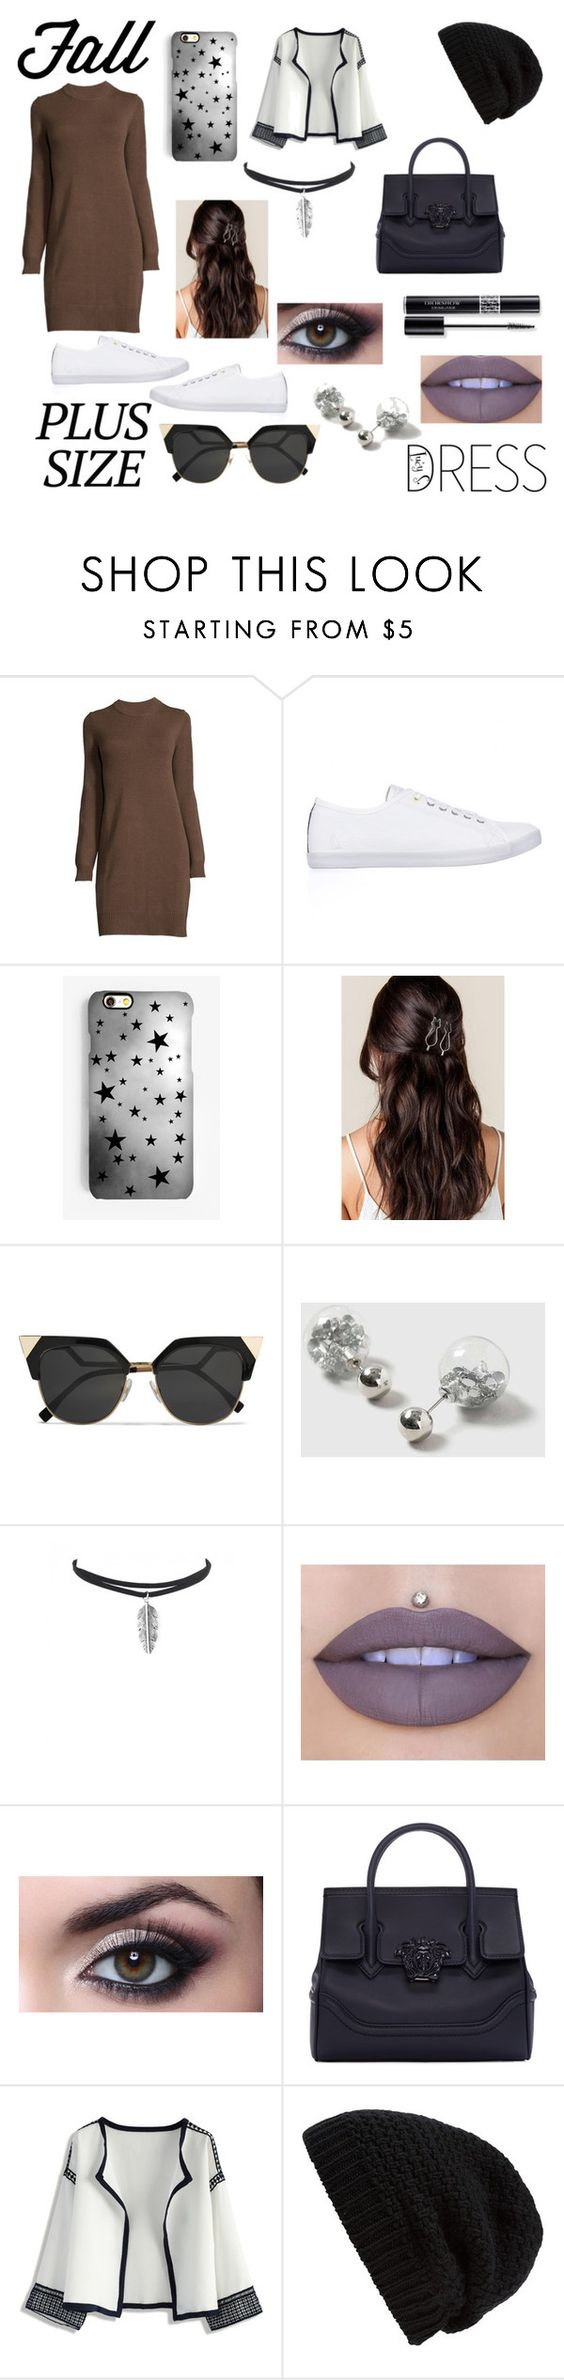 """""""Looks Like It's Fall"""" by bruhitslucy ❤ liked on Polyvore featuring Nautica, Rianna Phillips, Fendi, Dorothy Perkins, Jeffree Star, Versace, Chicwish, Rick Owens and Christian Dior"""